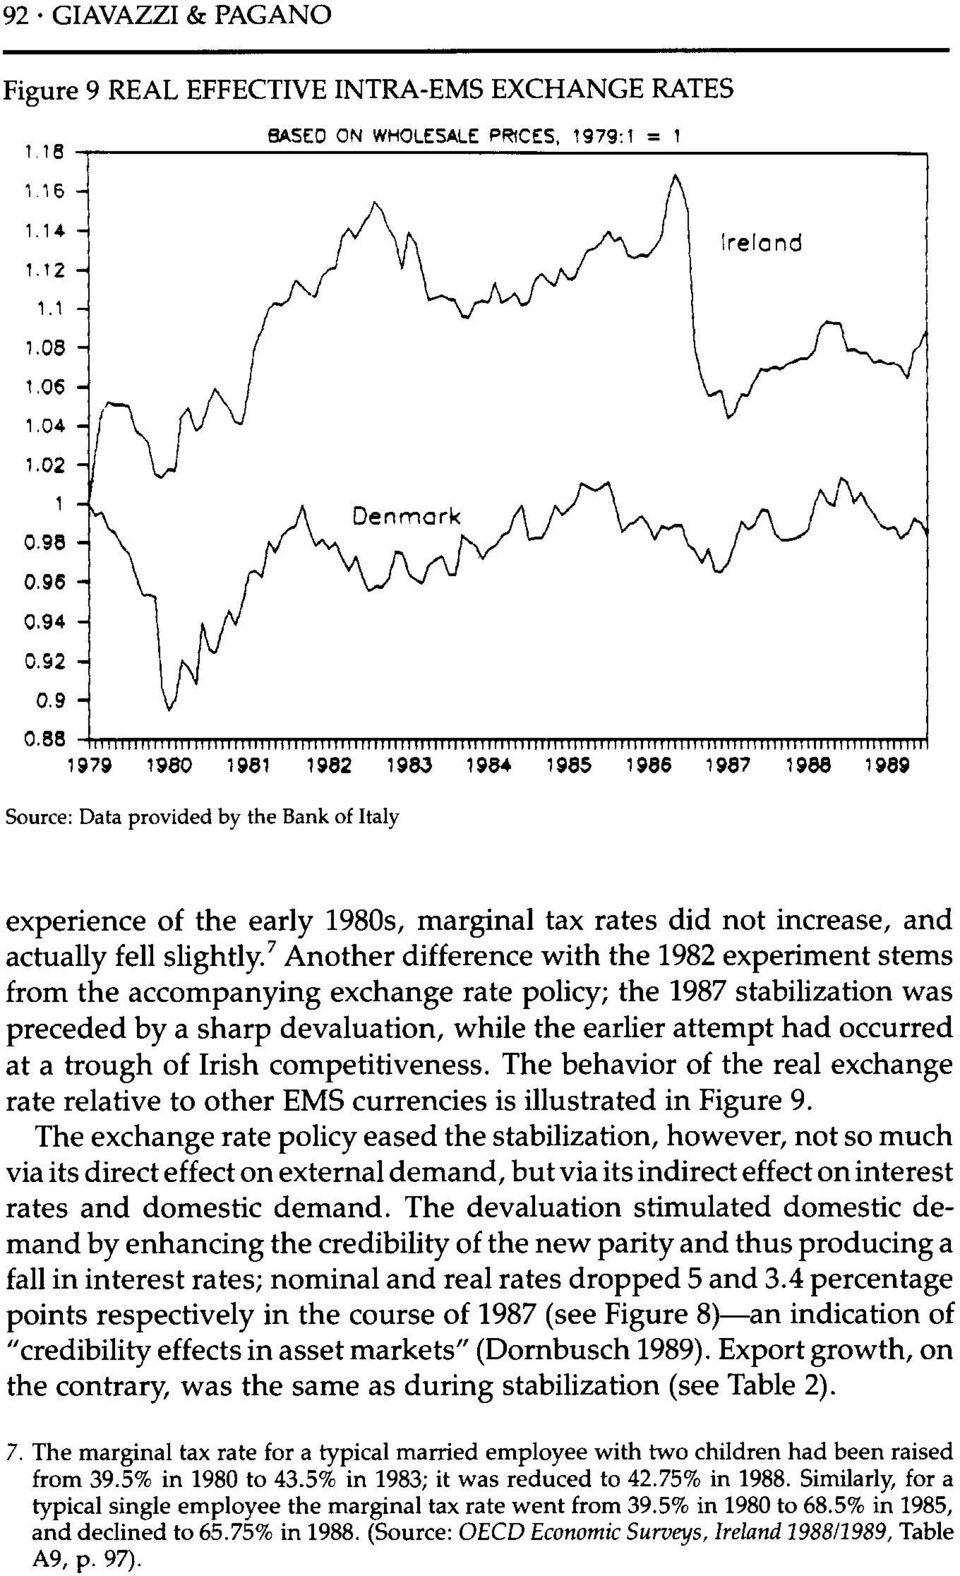 7 Another difference with the 1982 experiment stems from the accompanying exchange rate policy; the 1987 stabilization was preceded by a sharp devaluation, while the earlier attempt had occurred at a